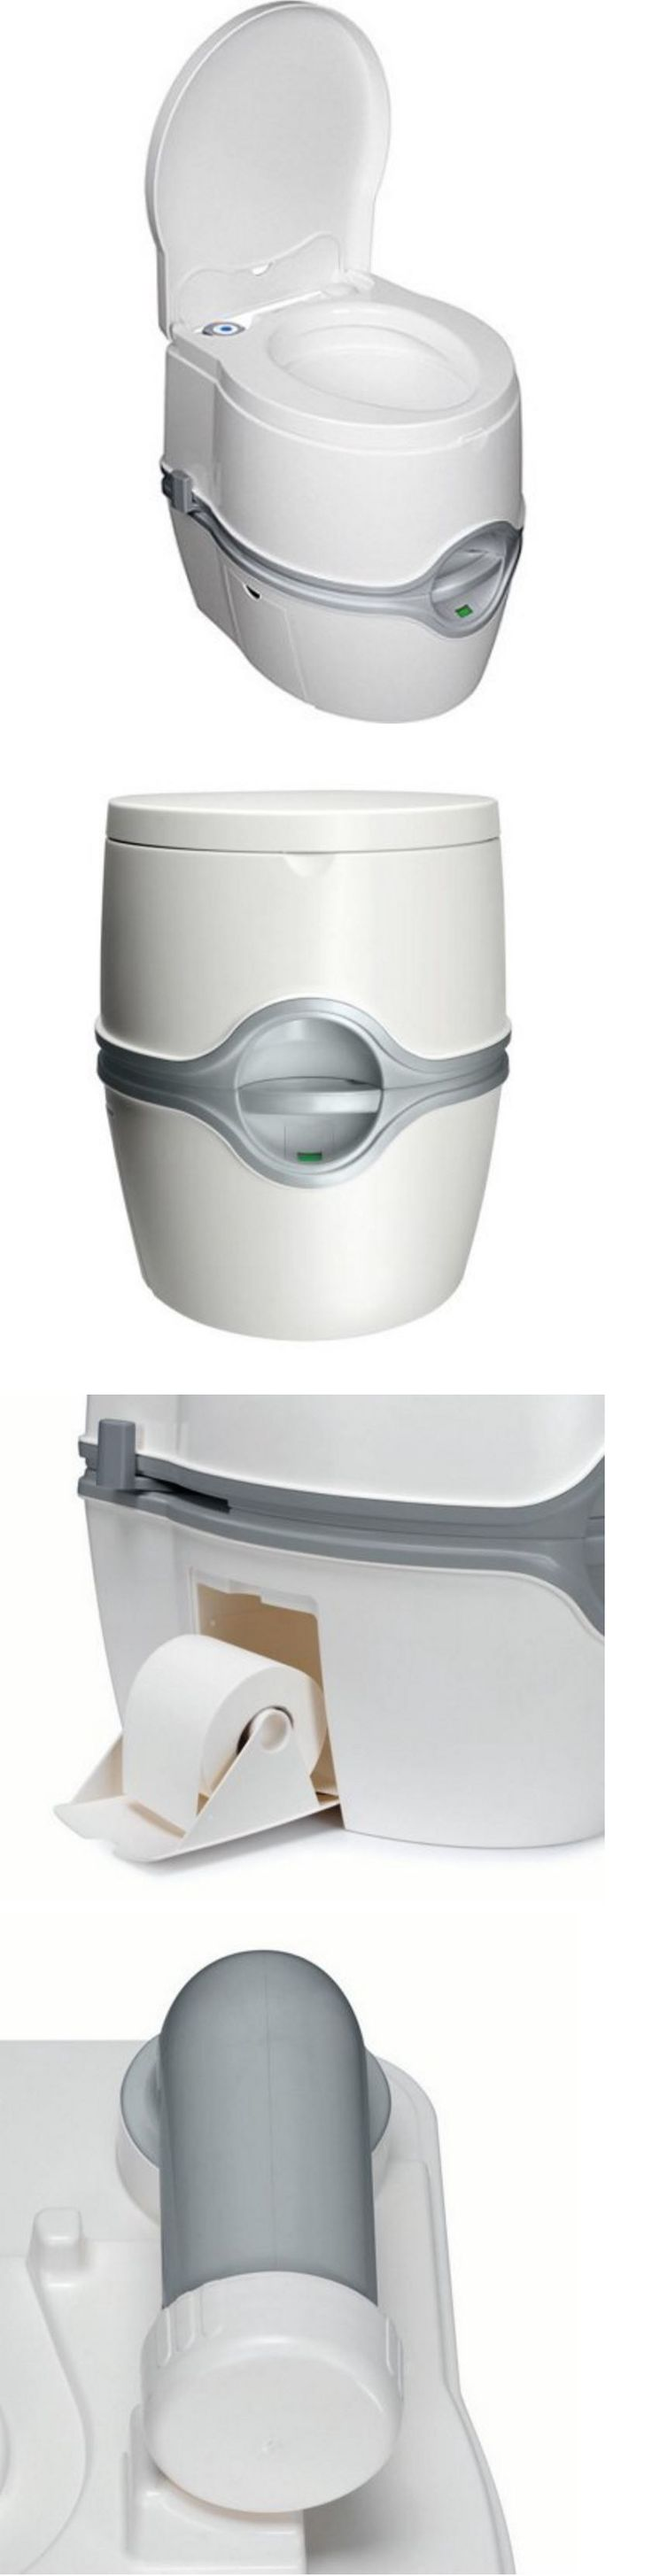 Portable commode folding bedside handicap adult toilet potty chair - Portable Toilets And Accessories 181397 Porta Potty For Camping Portable Toilet Marine Restroom Travel Outdoor